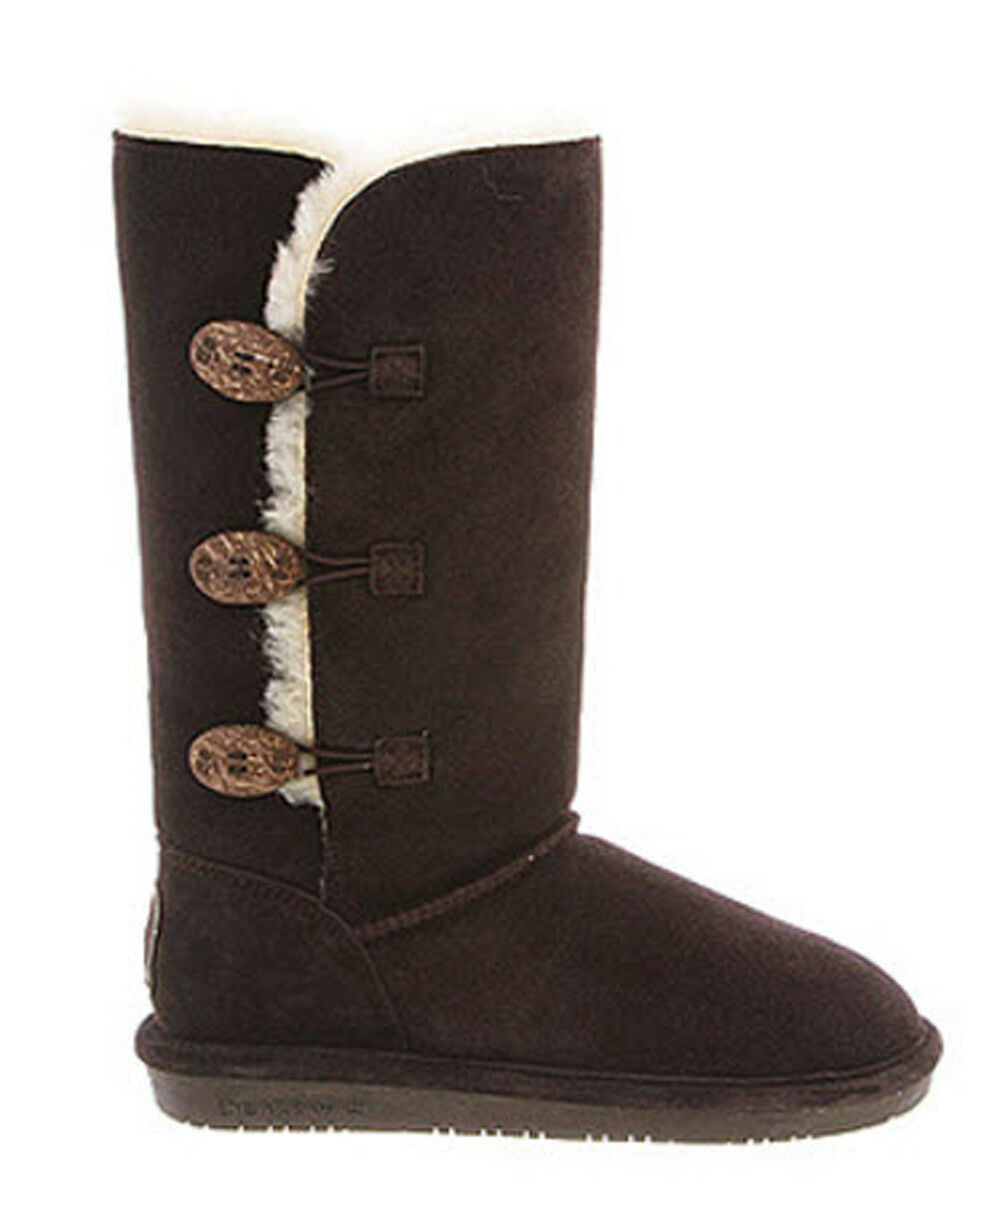 BEARPAW Lauren Sheep Skin Fur Cow Suede Cold Weather Boots, Size 5M, Chocolate,